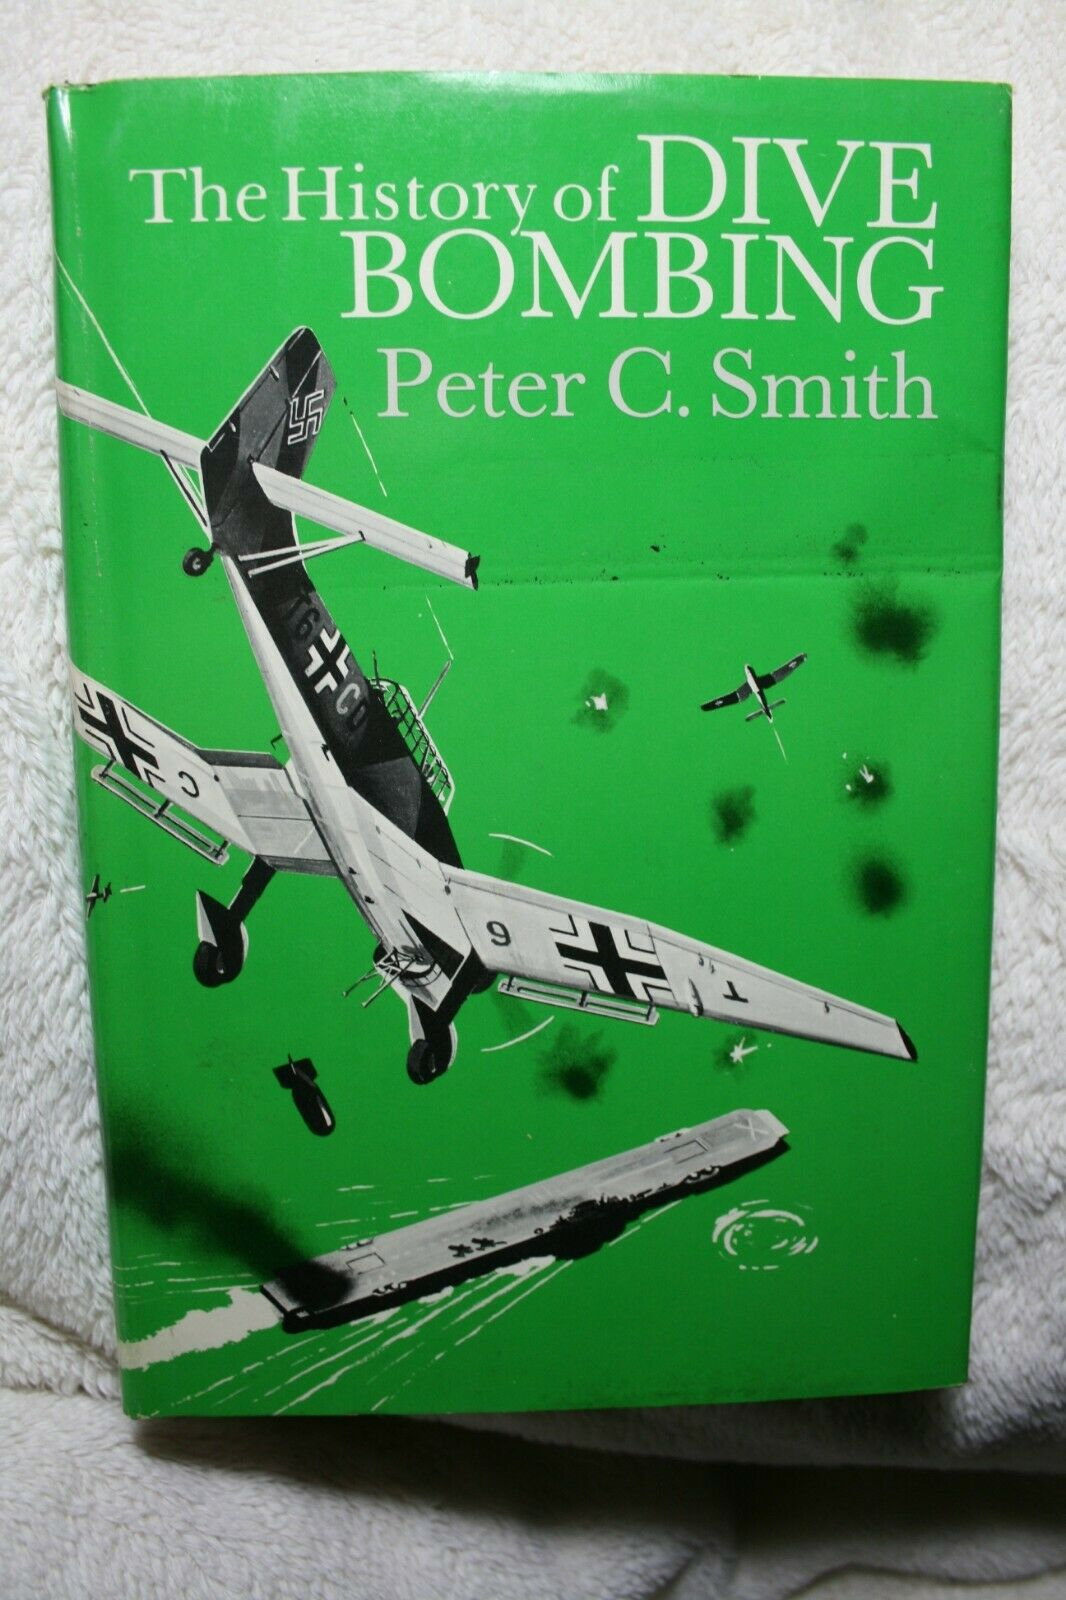 History of Dive Bombing Peter C. Smith HCDJ Very Good Condition |